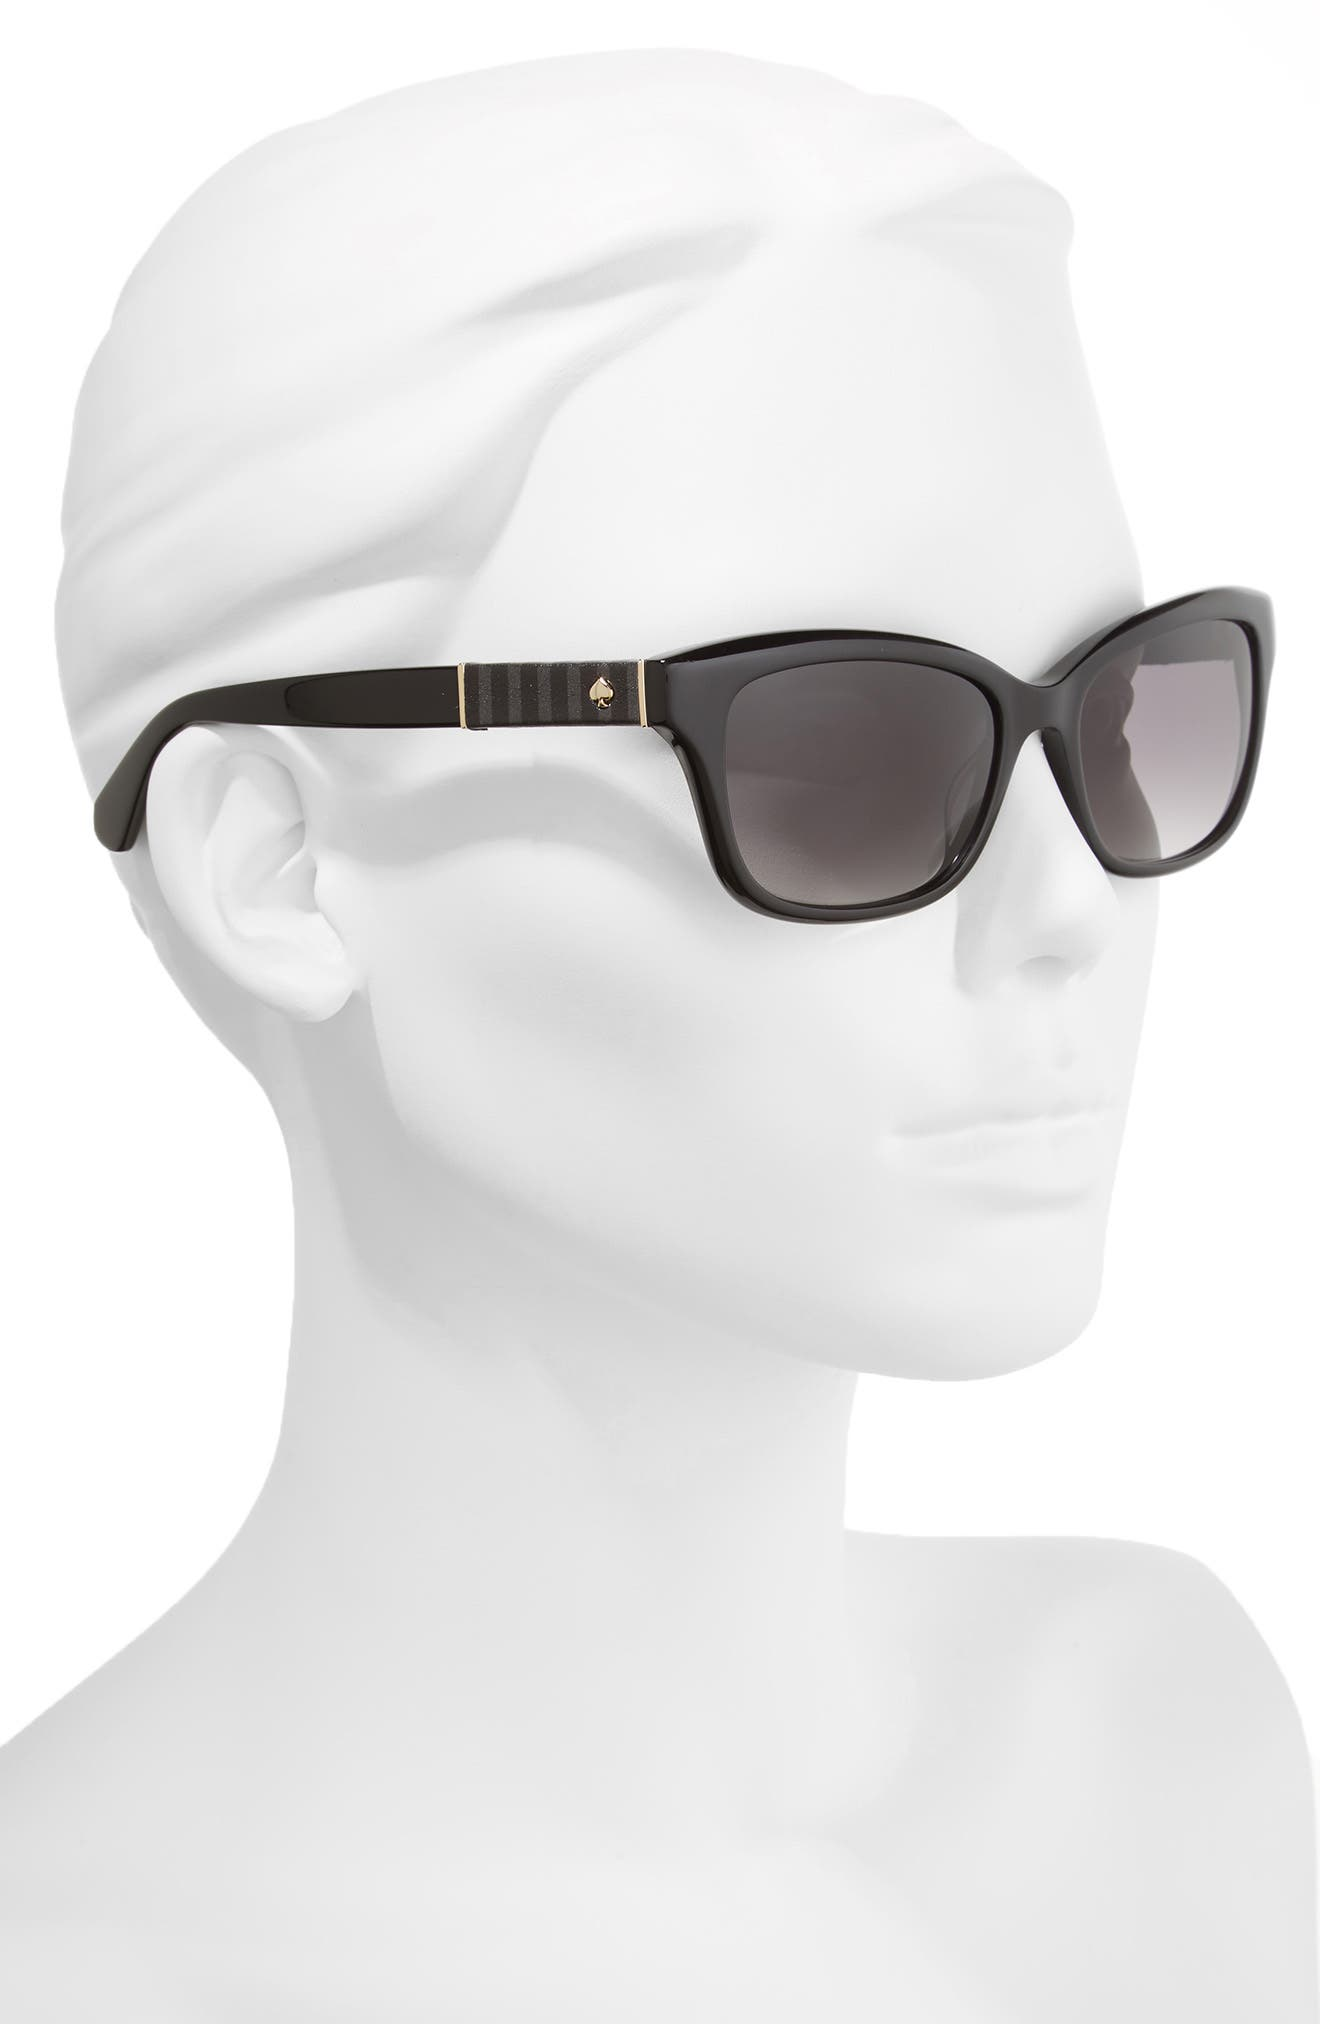 johanna 2 53mm gradient sunglasses,                             Alternate thumbnail 2, color,                             Black